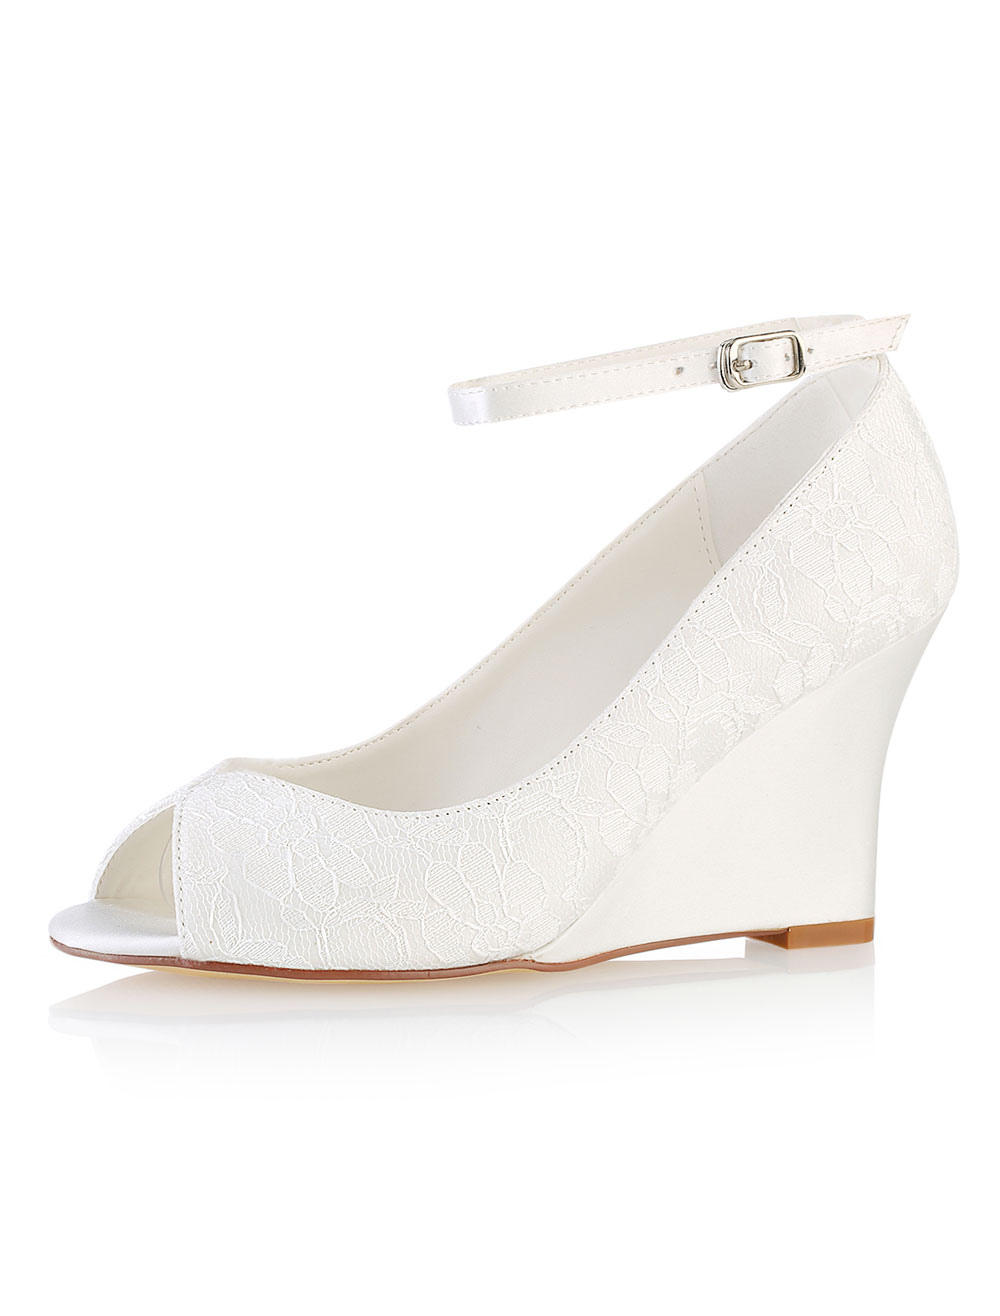 Buy Lace Wedding Shoes Ivory Peep Toe Wedge Shoes Ankle Strap Bridal Shoes for $51.29 in Milanoo store